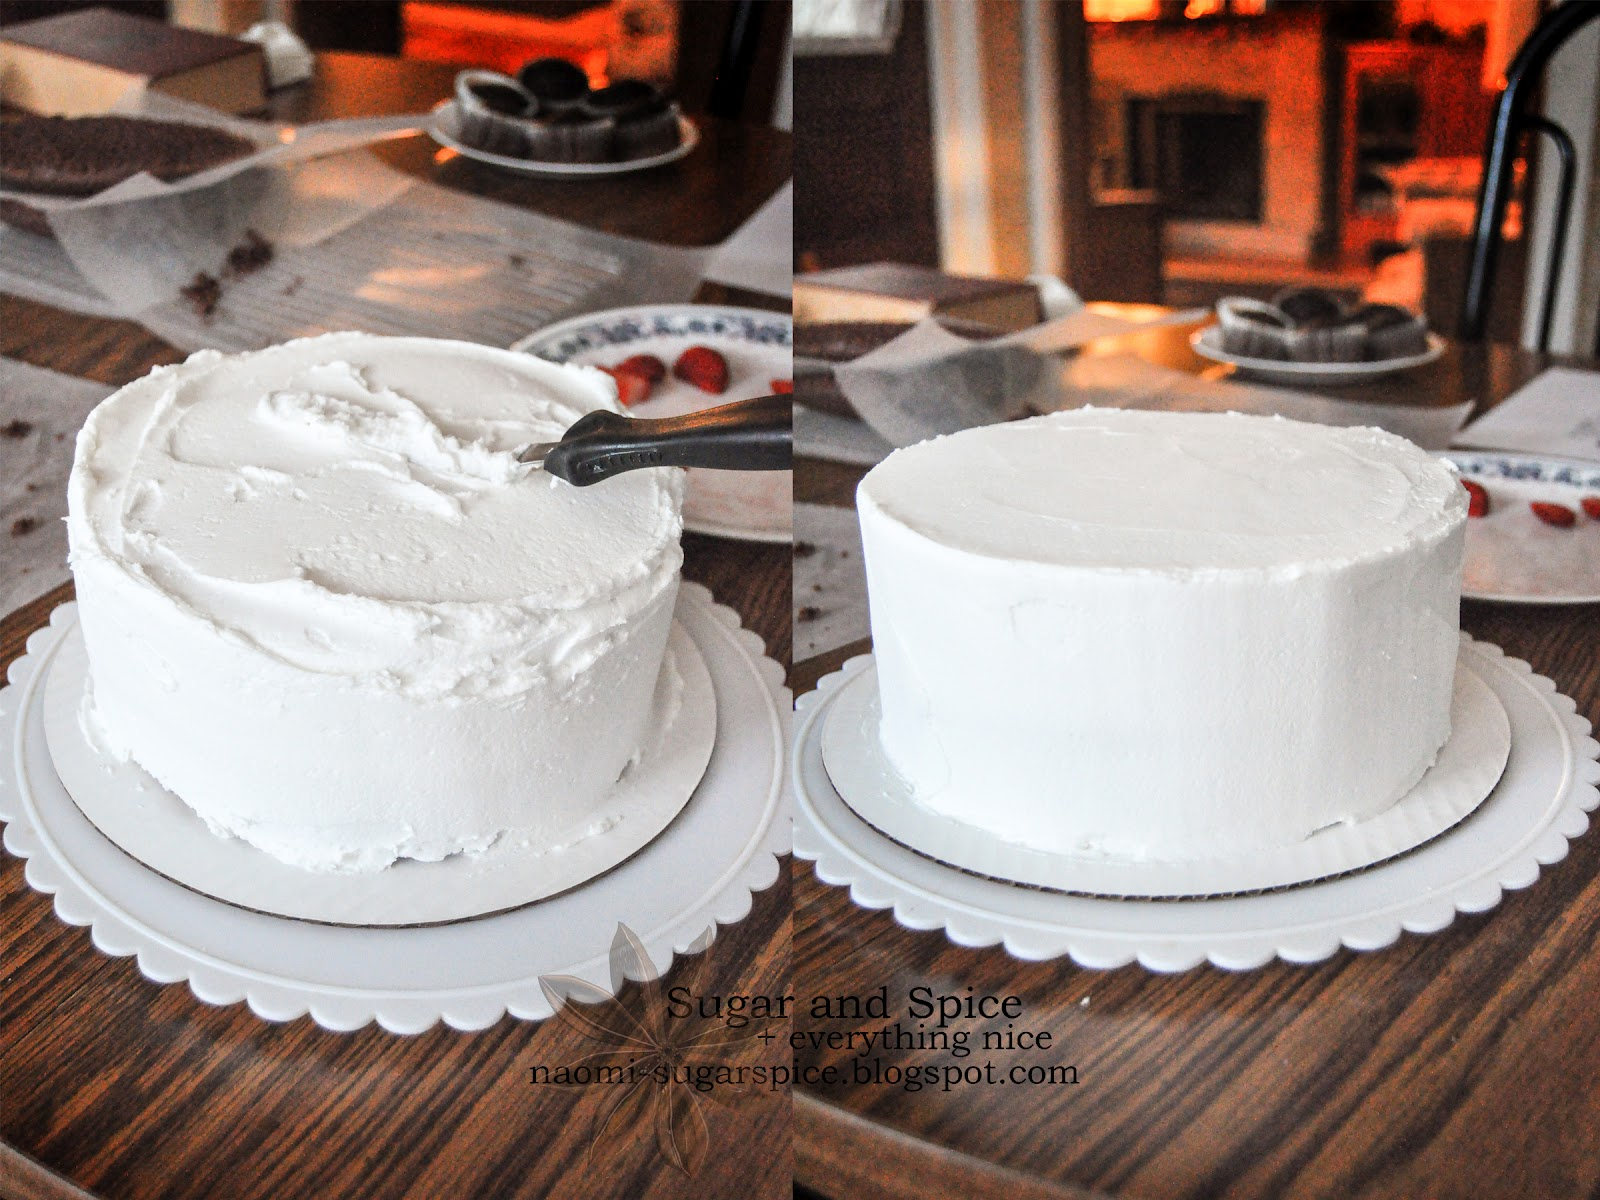 Cake Decorating Without Frosting : NaomiCakes - Easy How-To Food Blog - Baking Blog - Cooking ...